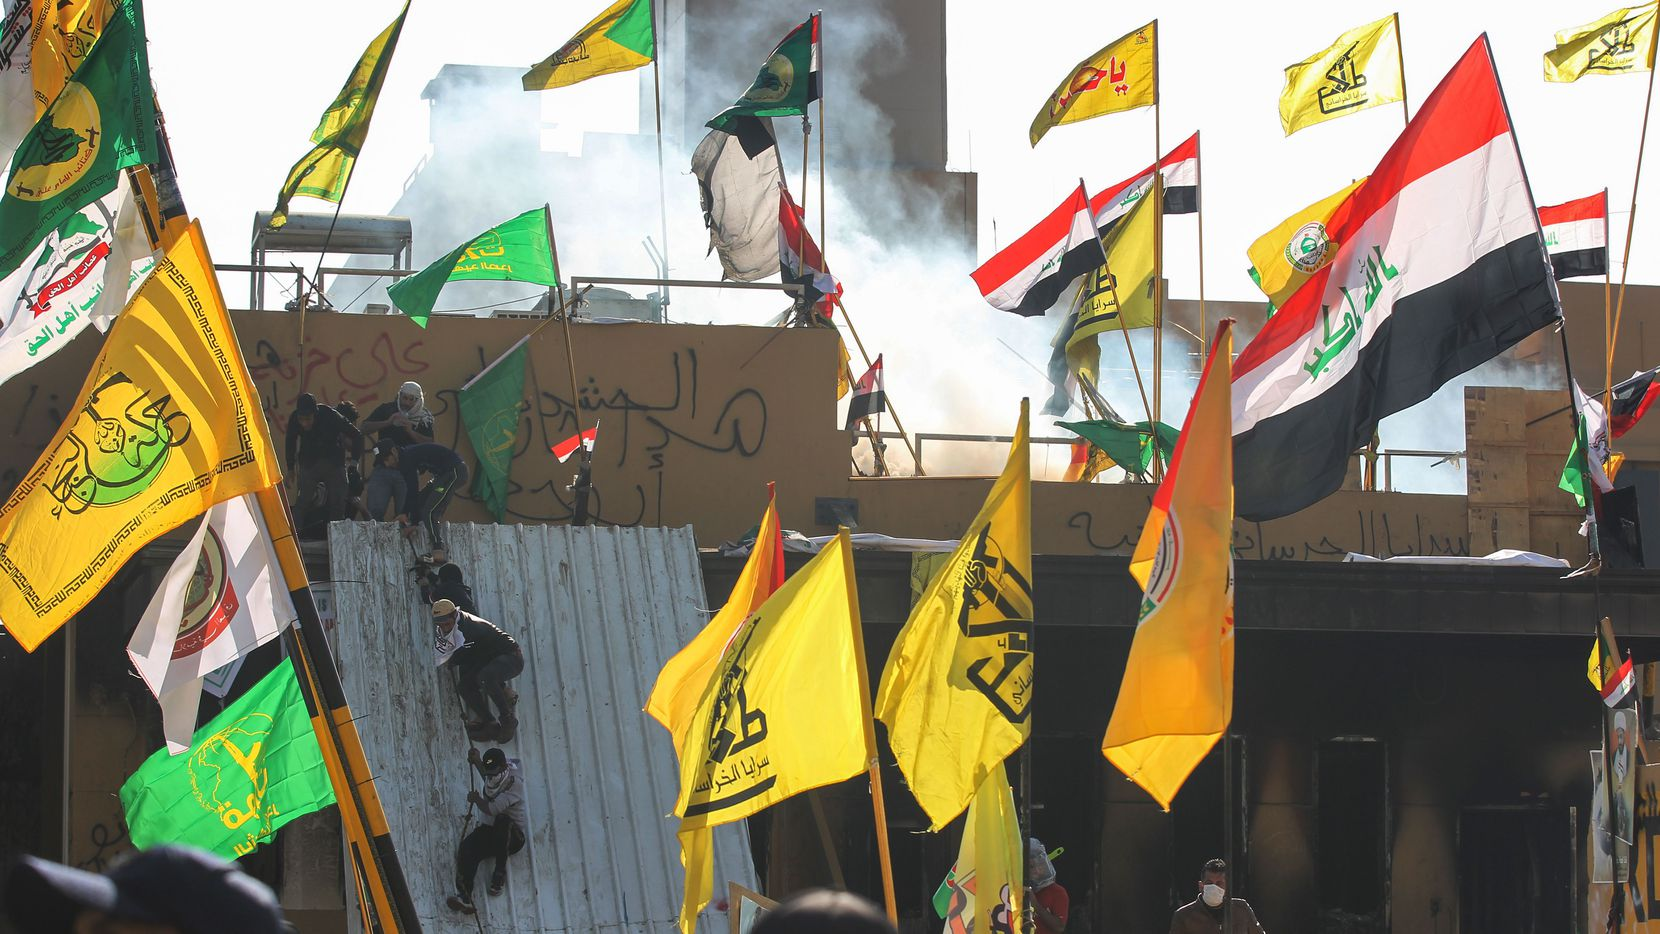 Supporters and members of the Hashed al-Shaabi paramilitary force try to scale a wall of the US embassy in the Iraqi capital Baghdad on January 1, 2020. Pro-Iran Iraqi demonstrators left the besieged US embassy in Baghdad after the Hashed al-Shaabi paramilitary force ordered them to withdraw.